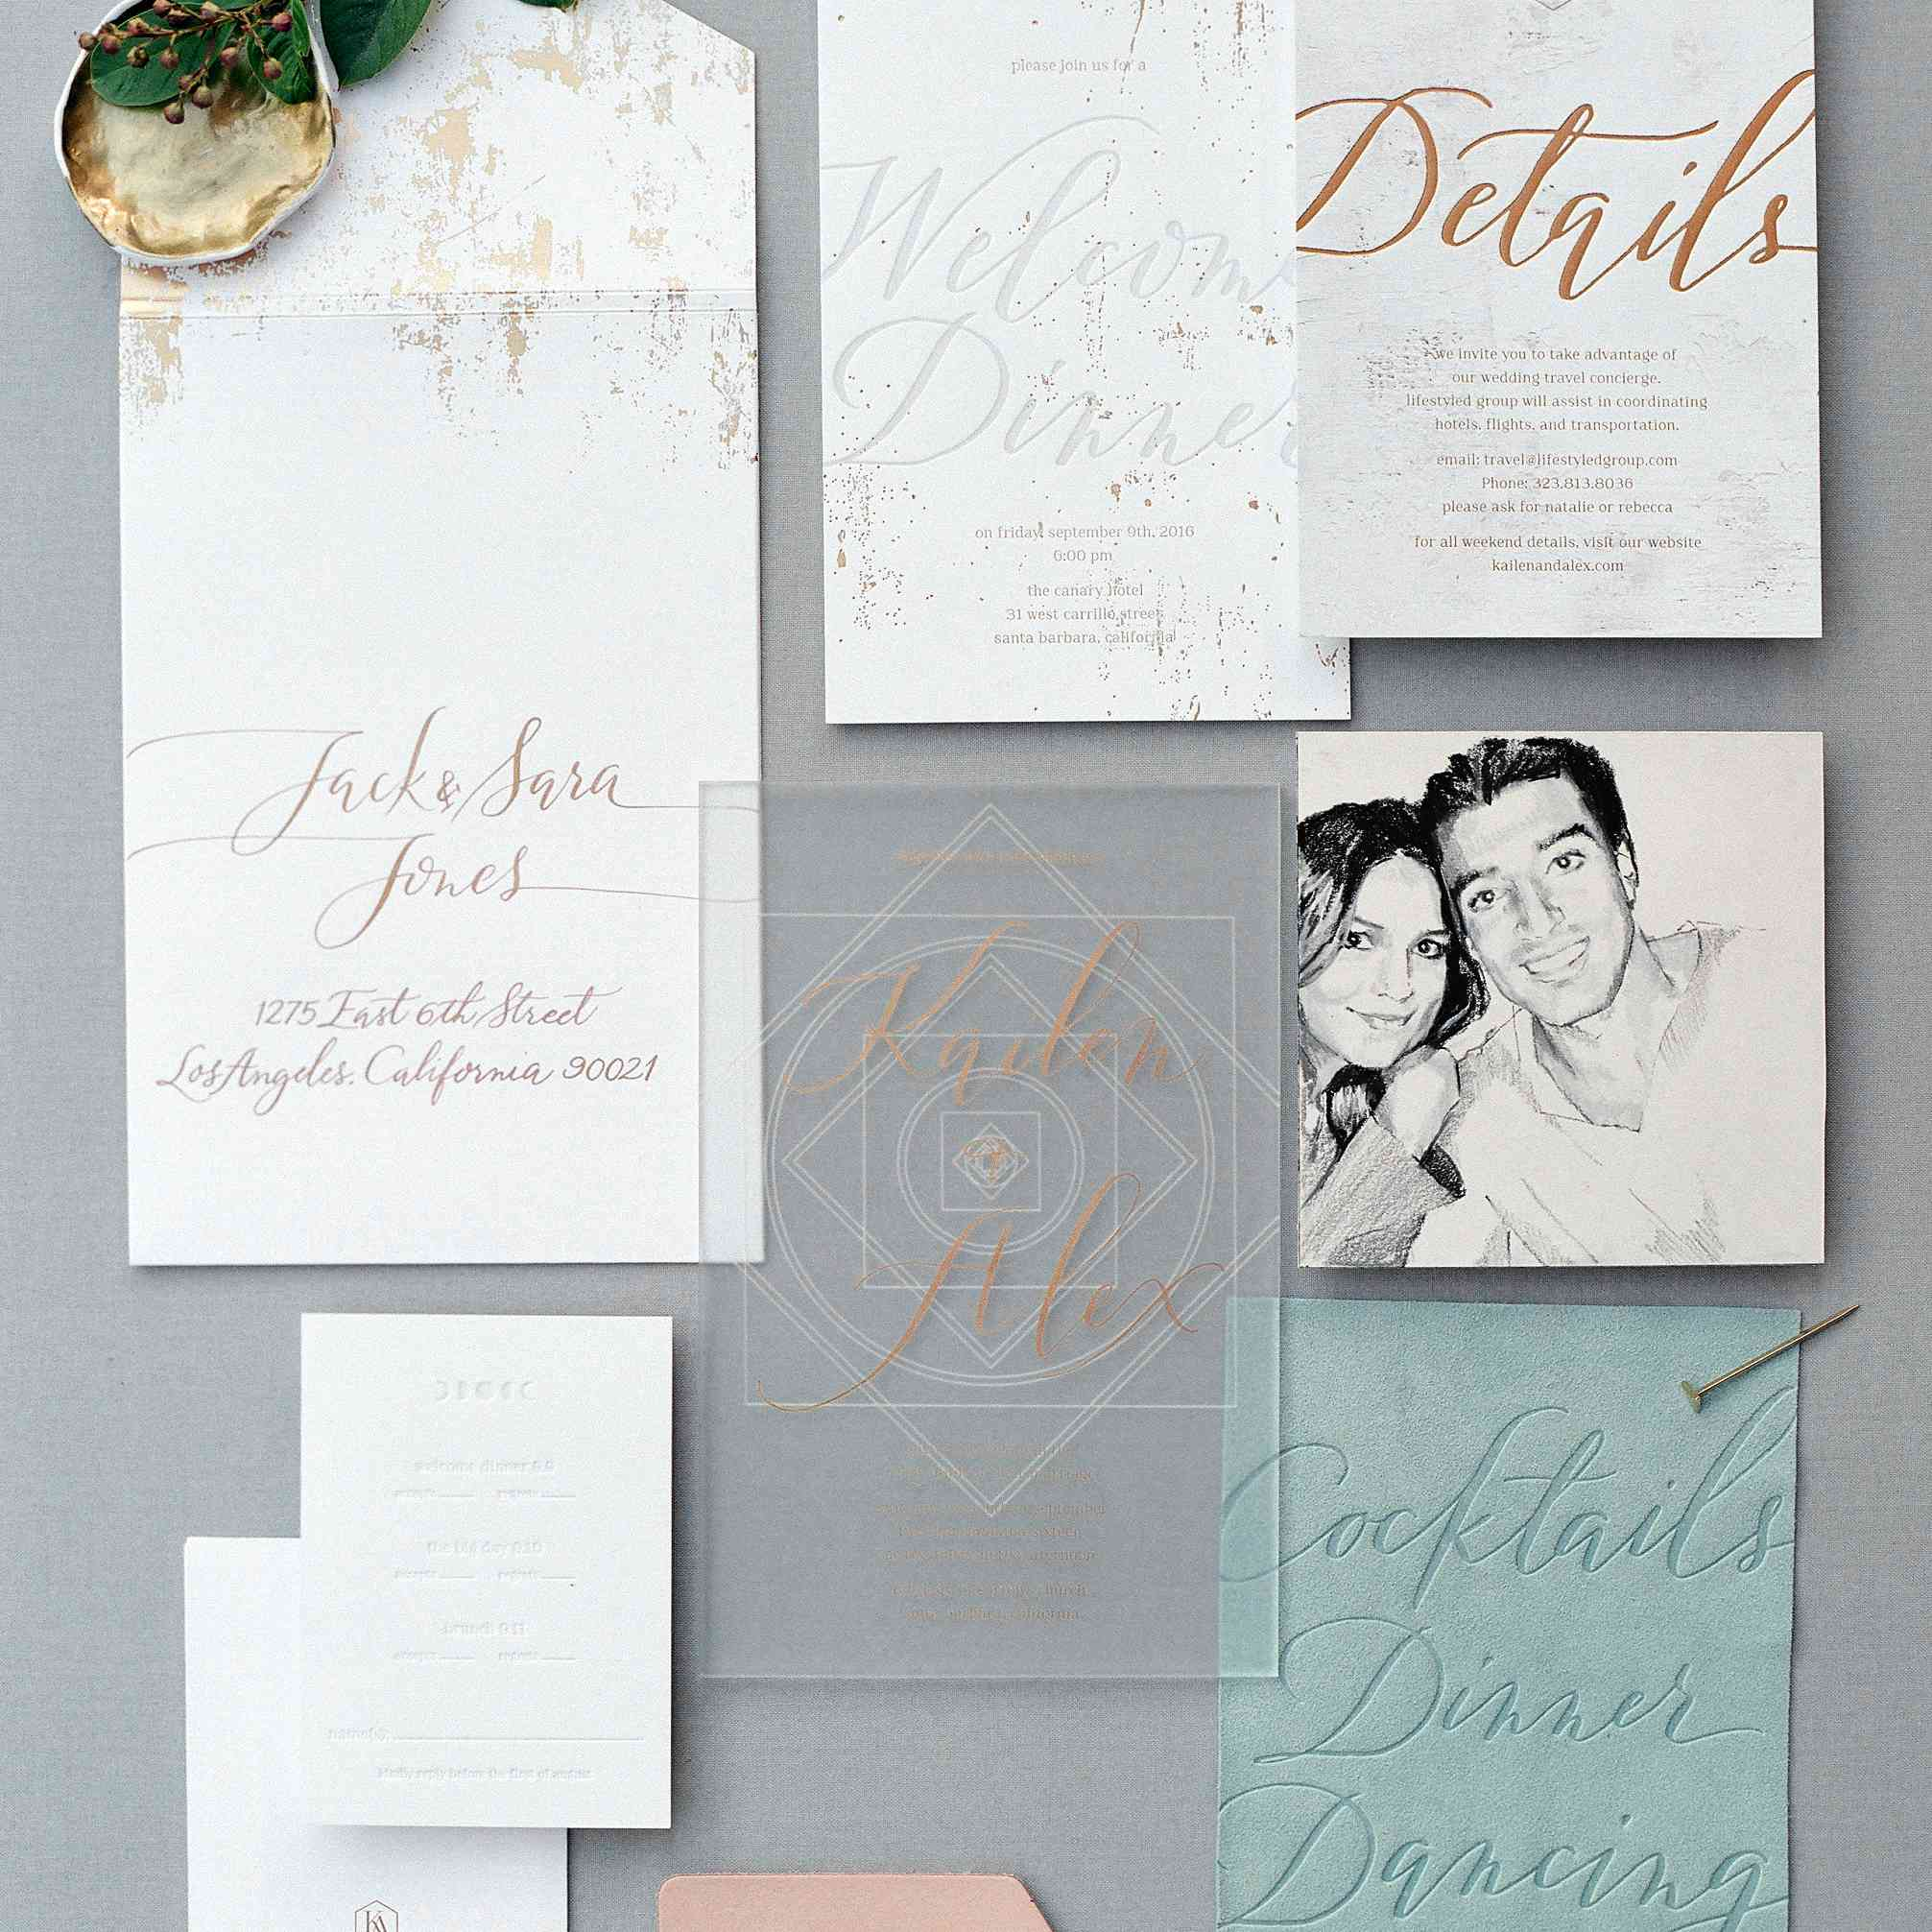 Print Your Own Wedding Invitations: How To Print Your Own Wedding Invitations: 14 Things To Know